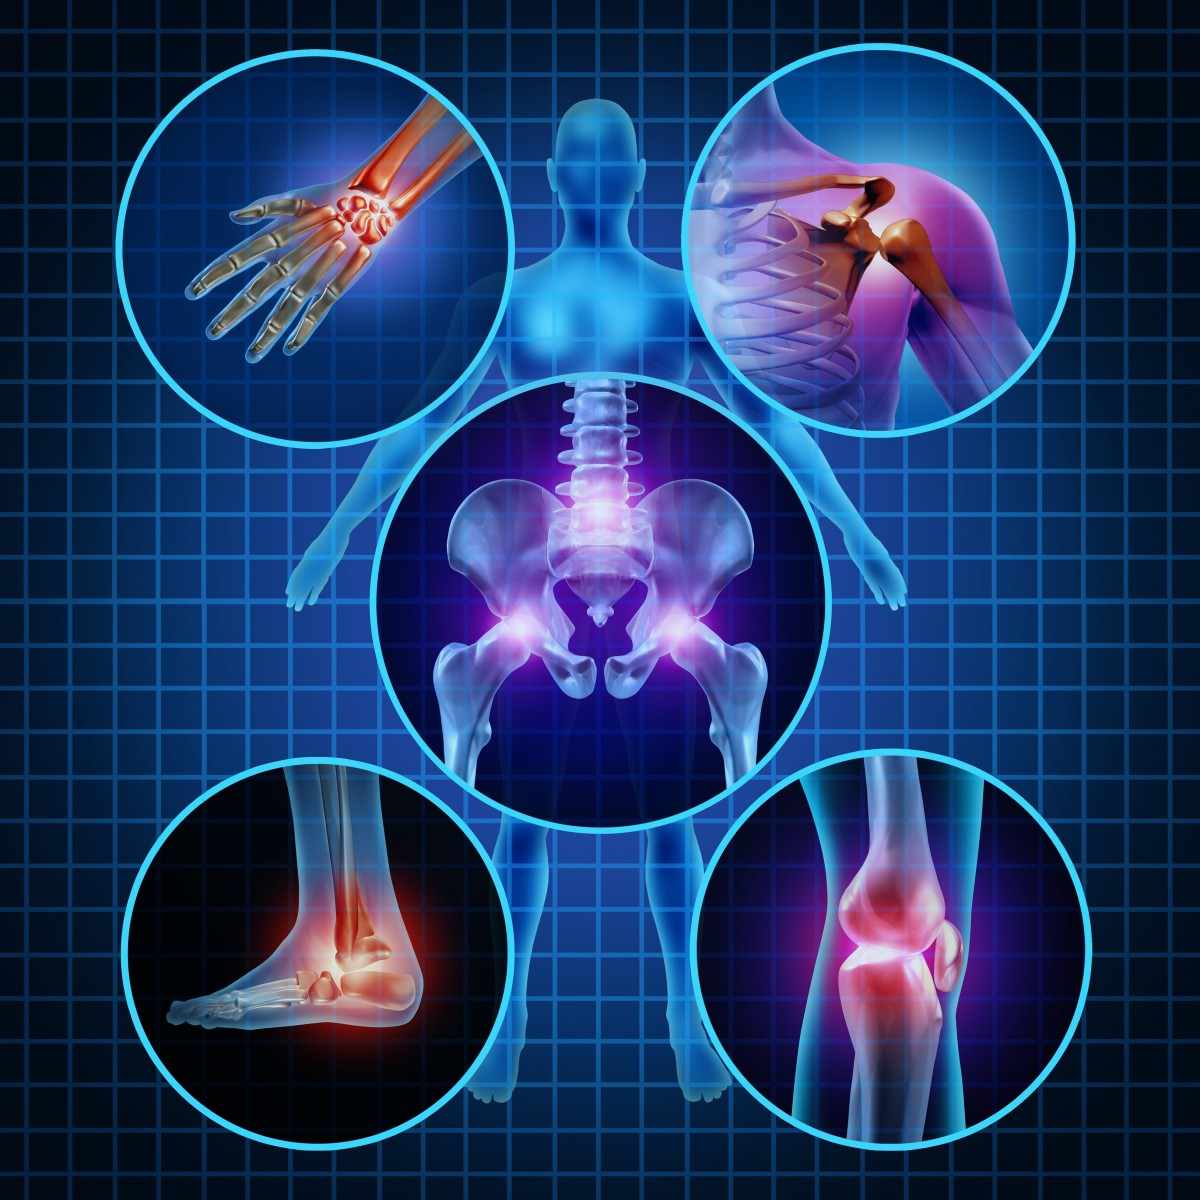 What Allows Remission in Patients with Early Rheumatoid Arthritis?